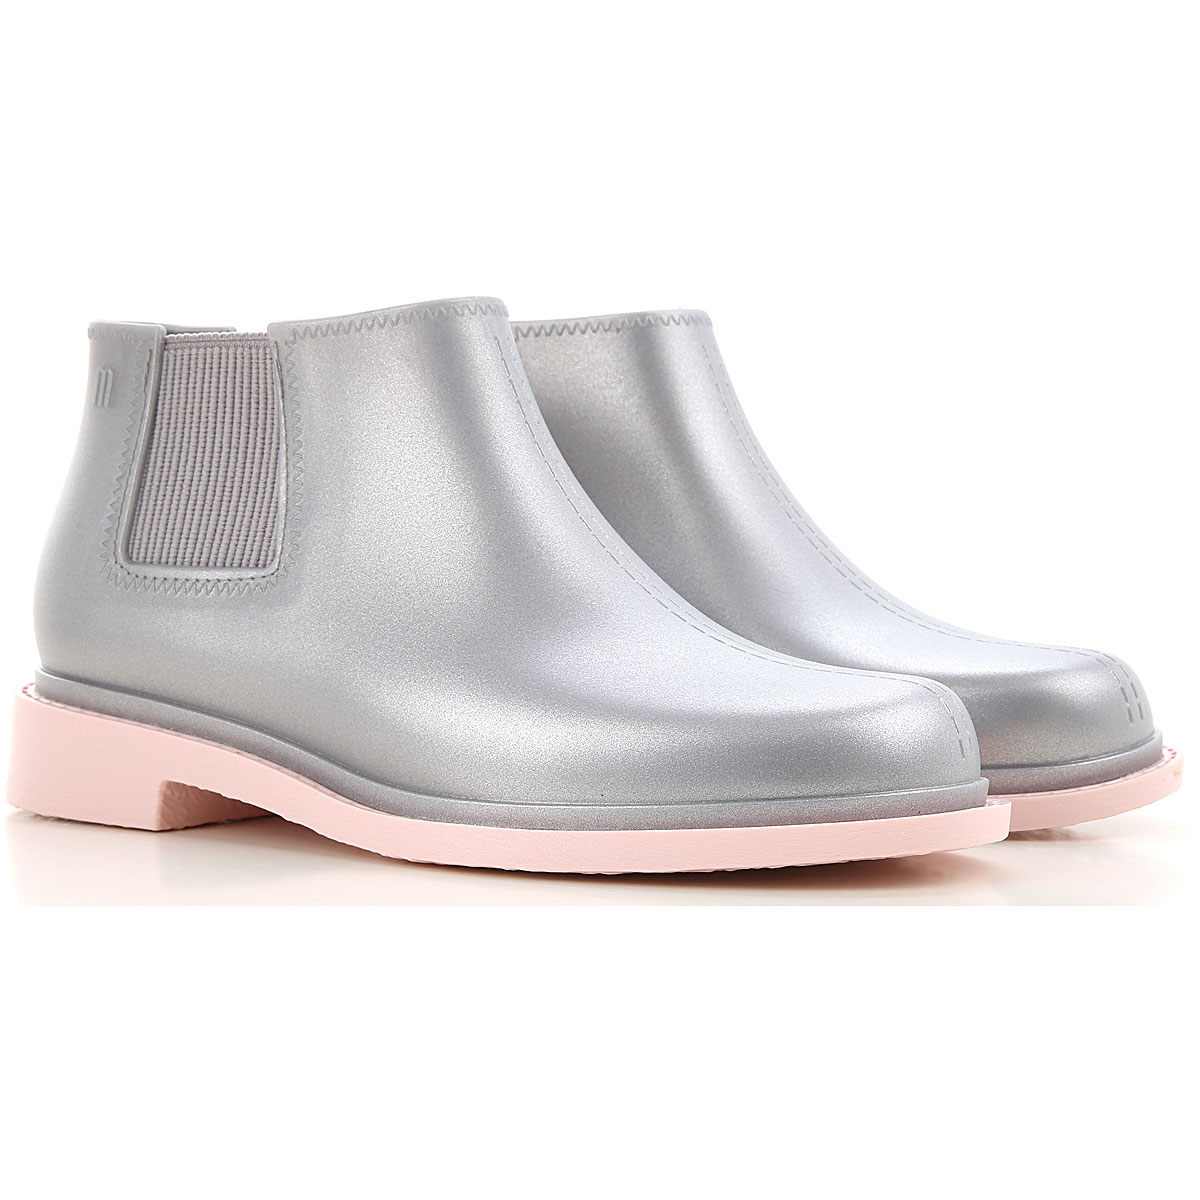 Melissa Boots for Women, Booties On Sale, Silver, PVC, 2019, USA 5 - EUR 35/36 USA 6 - EUR 37 USA 7 - EUR 38 USA 8 - EUR 39